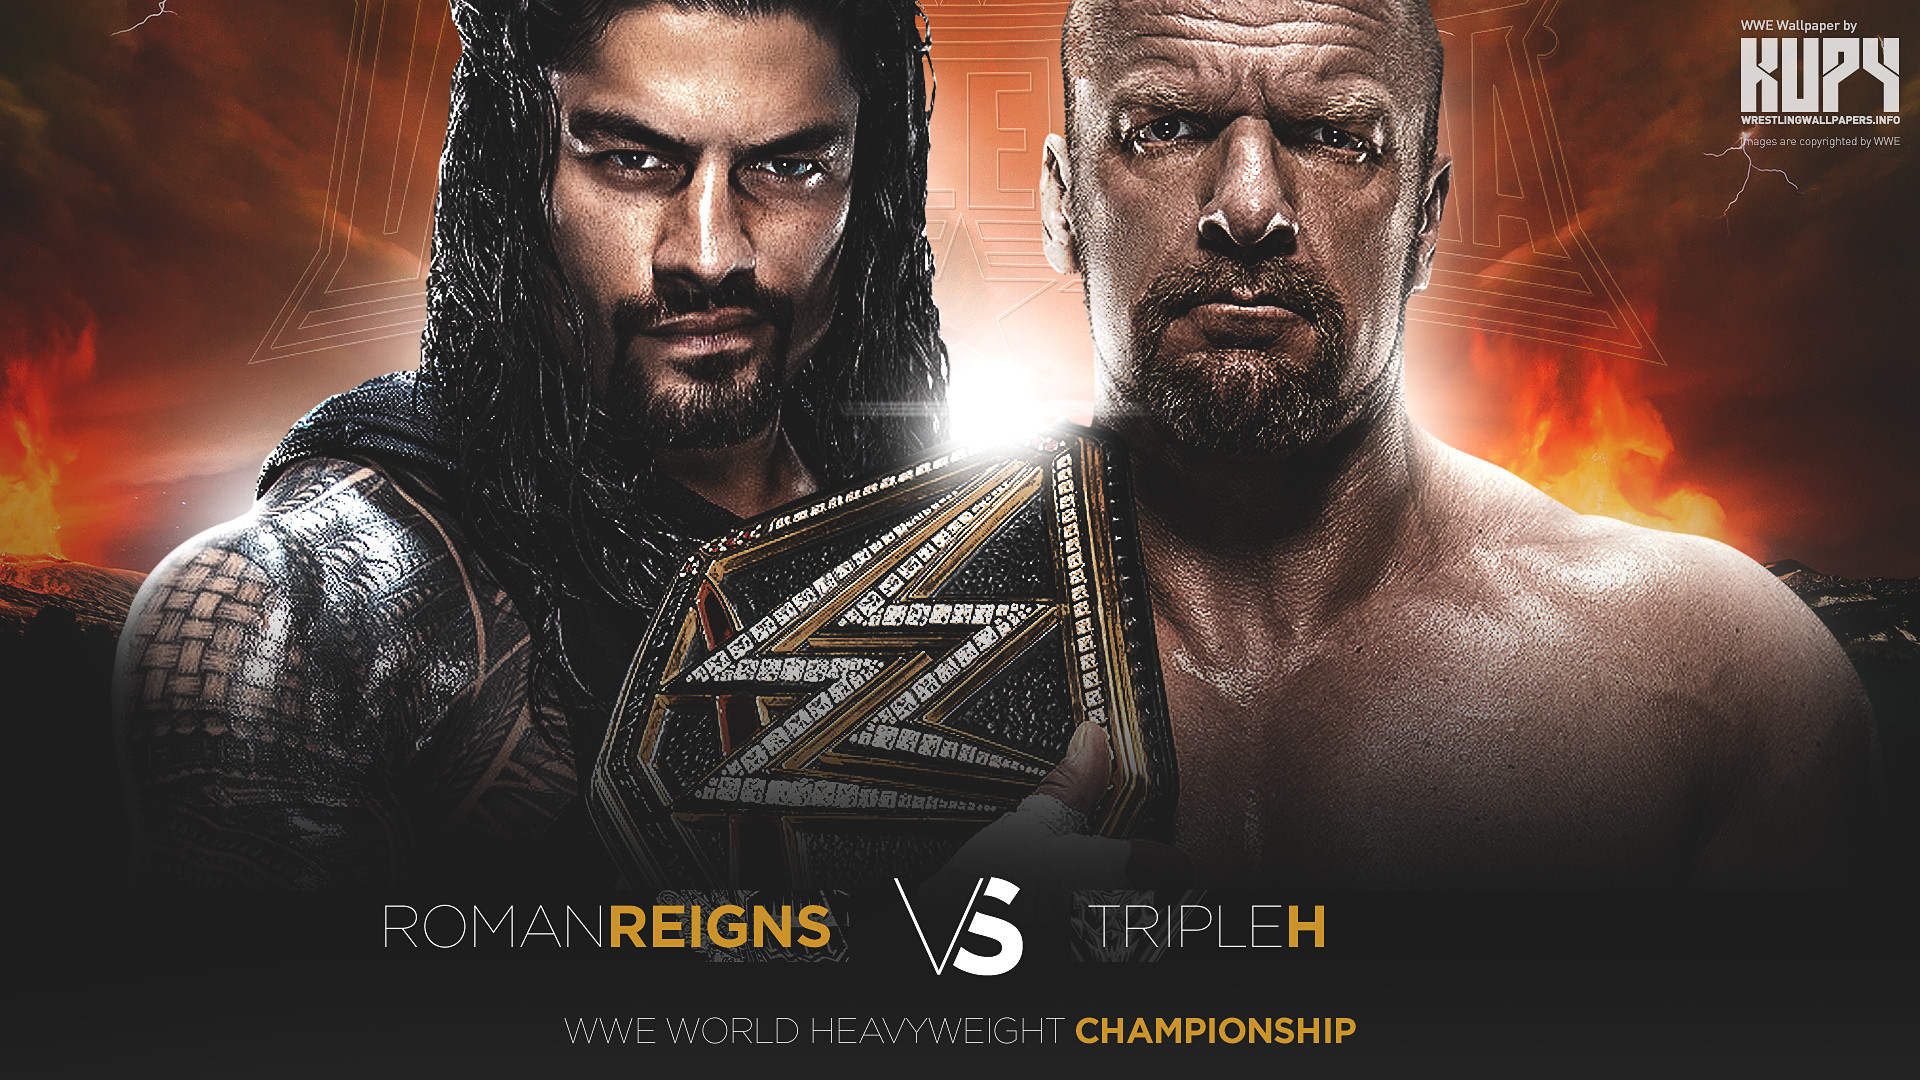 1920x1080 Roman Reigns WWE World Heavyweight Championship match WrestleMania 32  wallpaper 1920×1200 | 1920×1080 ...